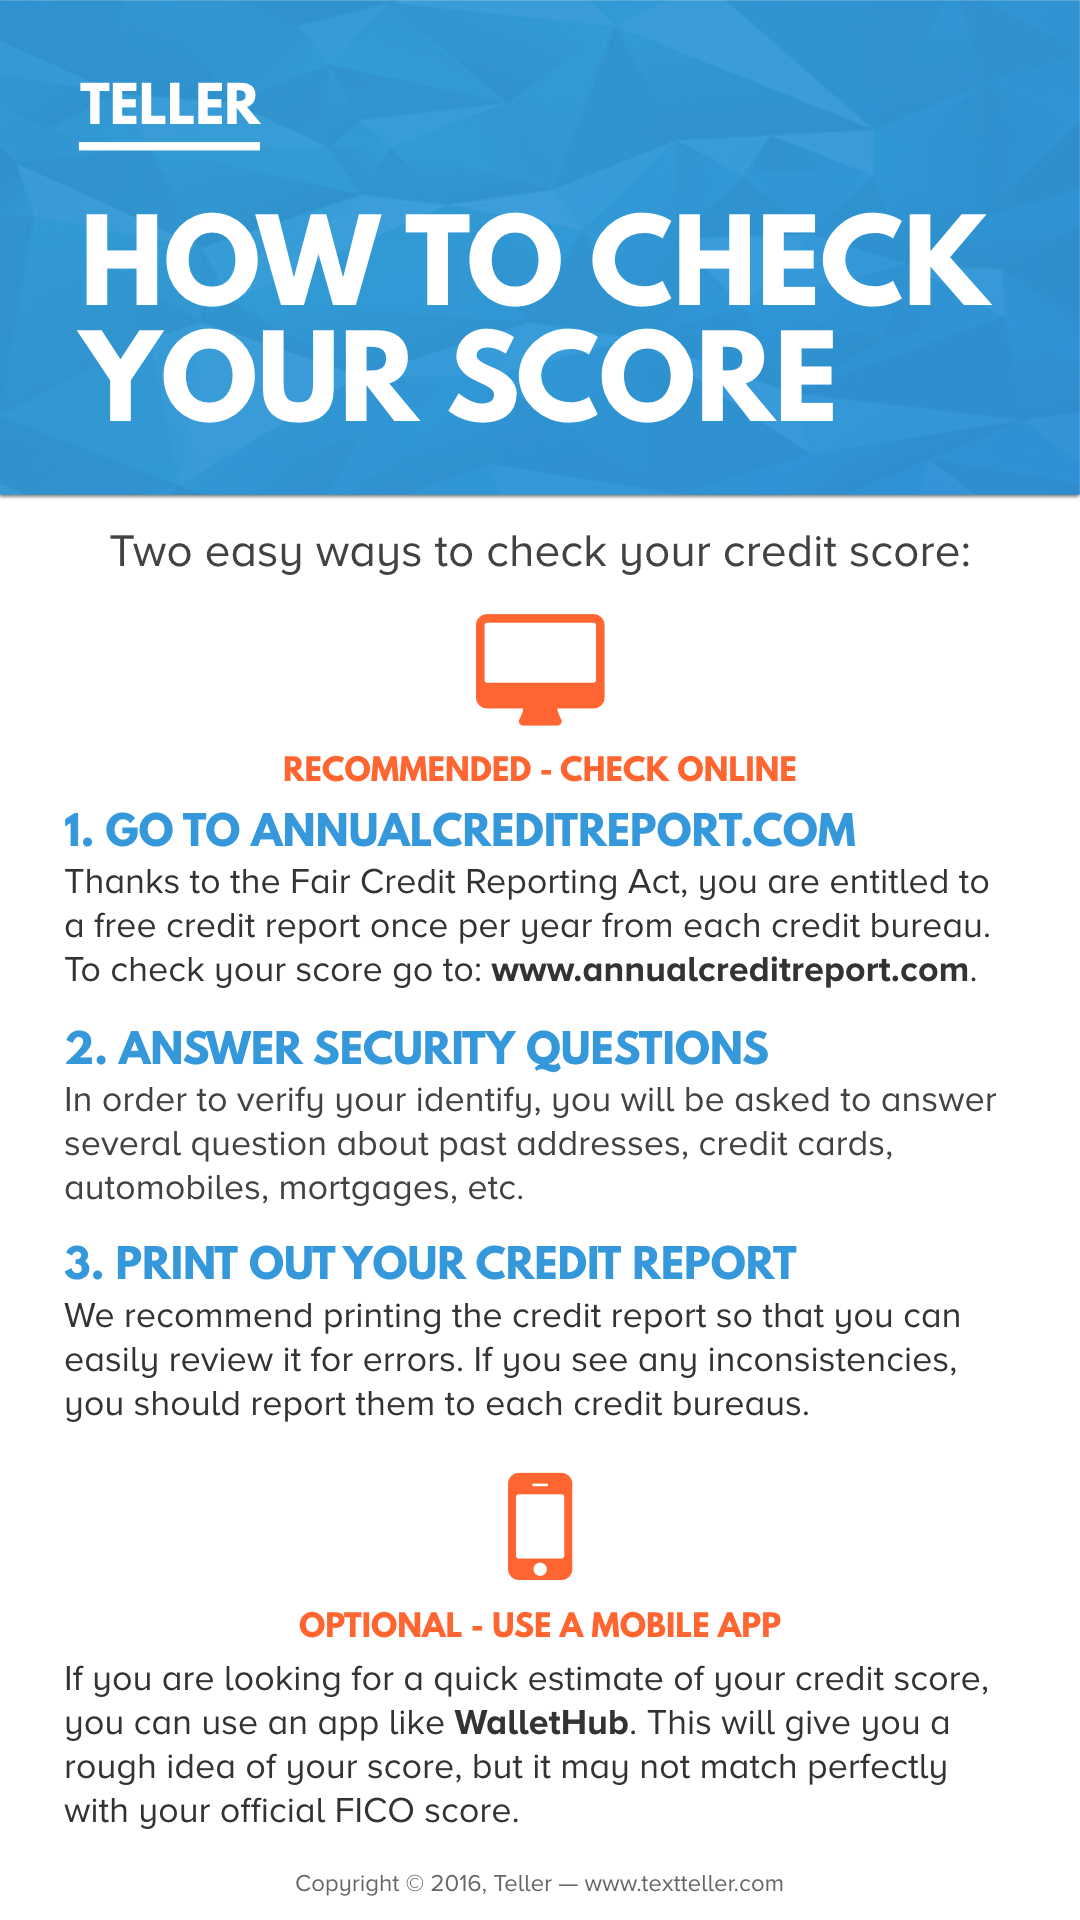 teller_credit_how_to_check.png